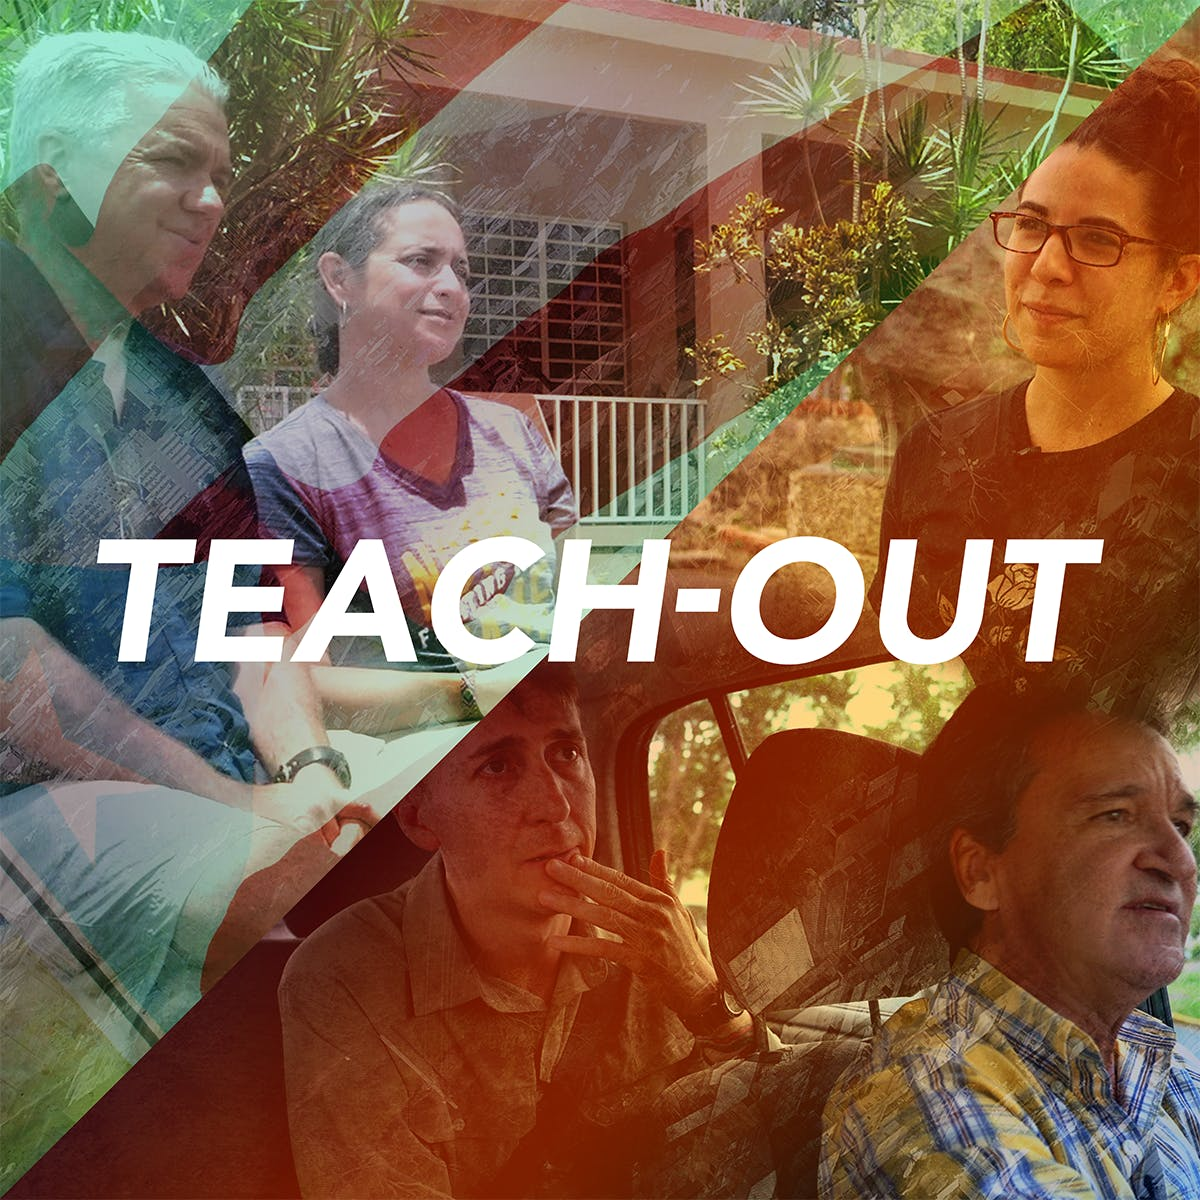 Listening to Puerto Rico Teach-Out